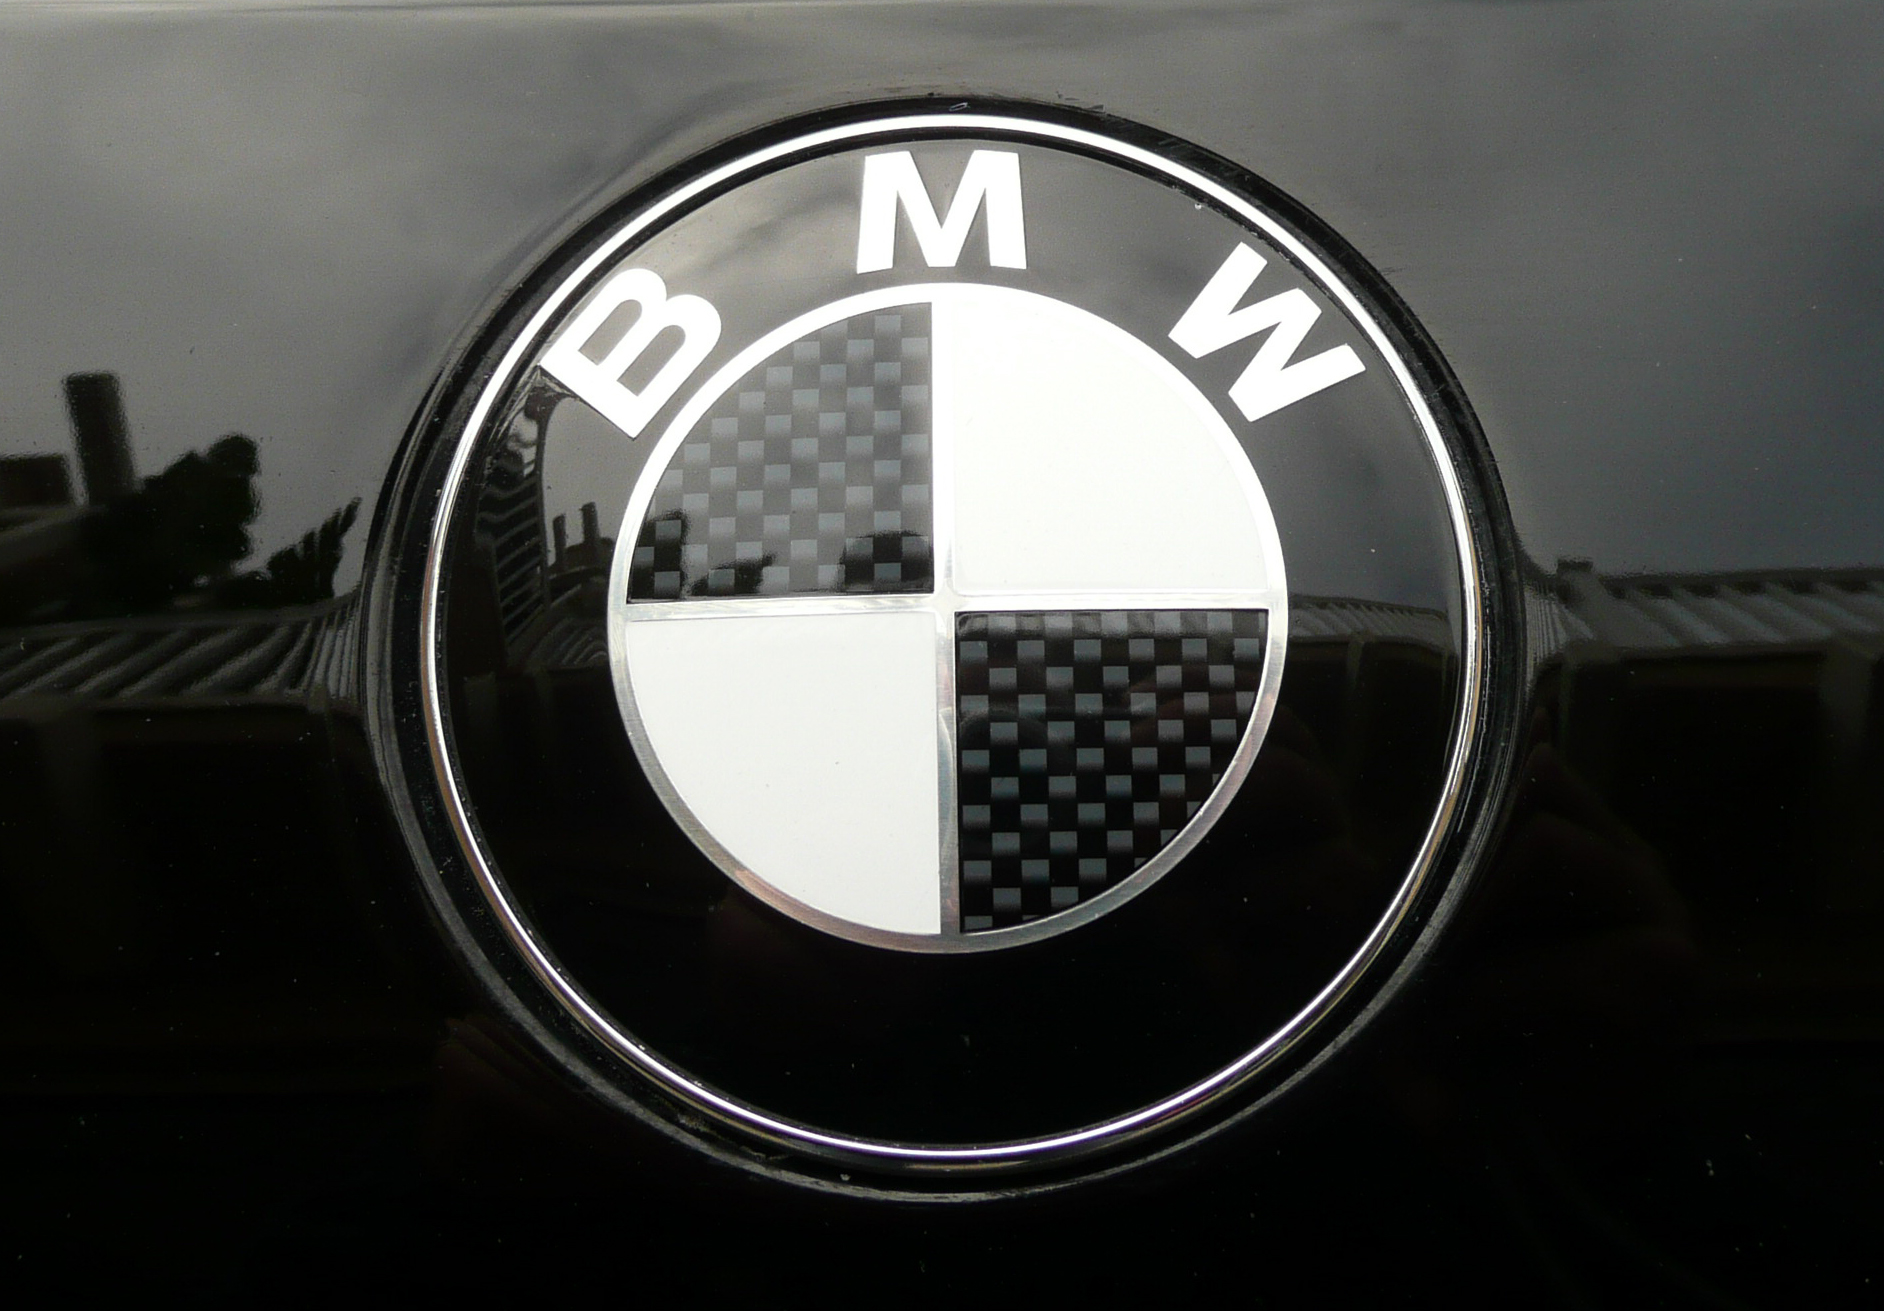 bmw motorcycle logo meaning and history symbol bmw - HD 1884×1311